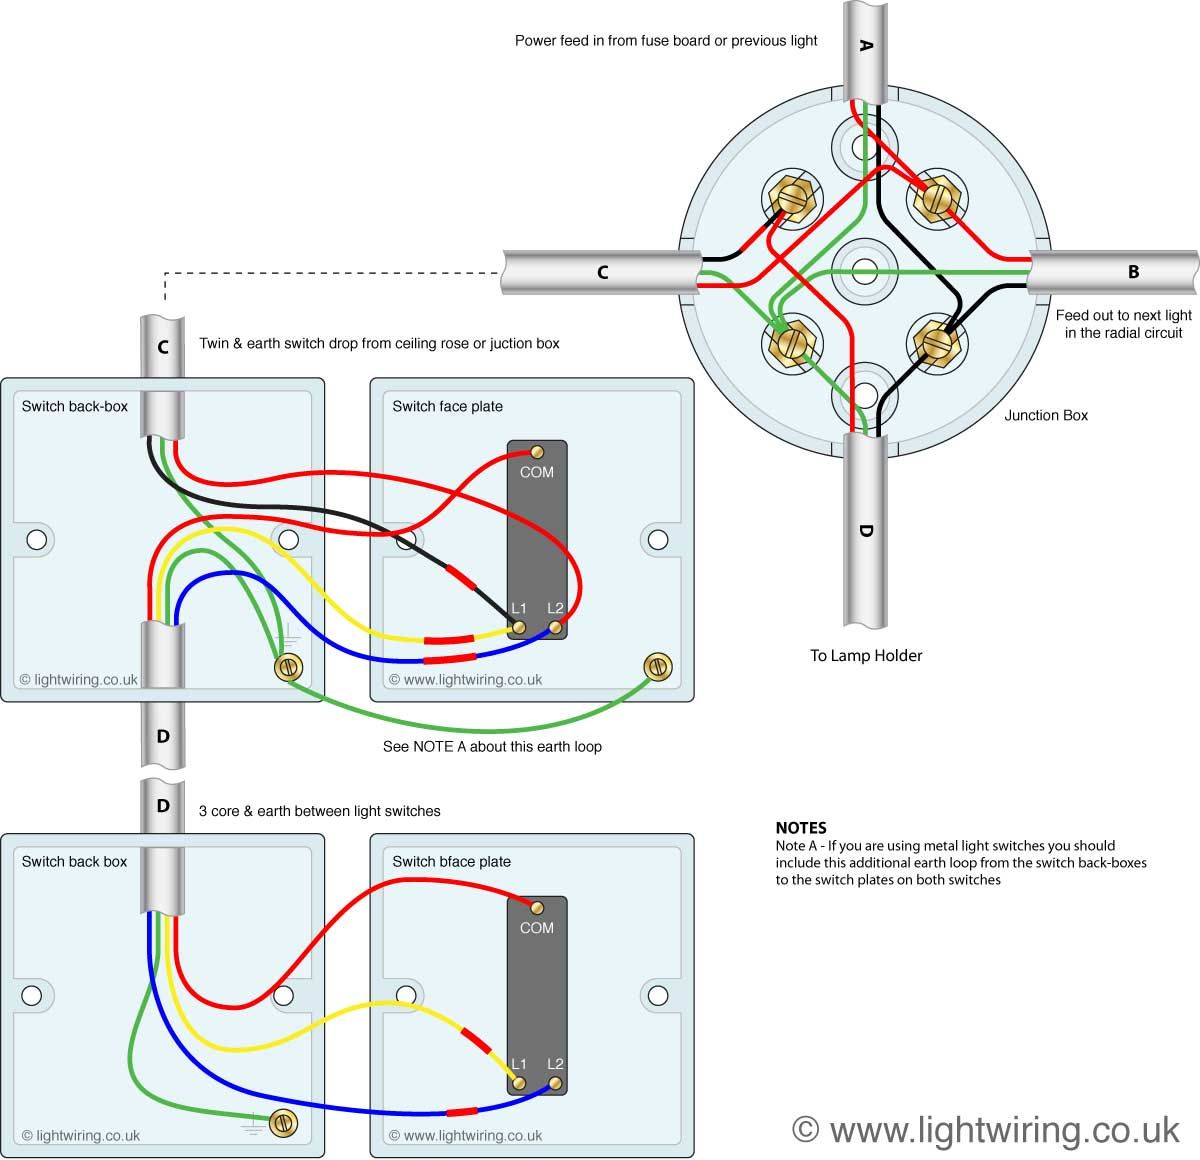 Pin By Diagram Bacamajalah On Wiring Samples In 2019